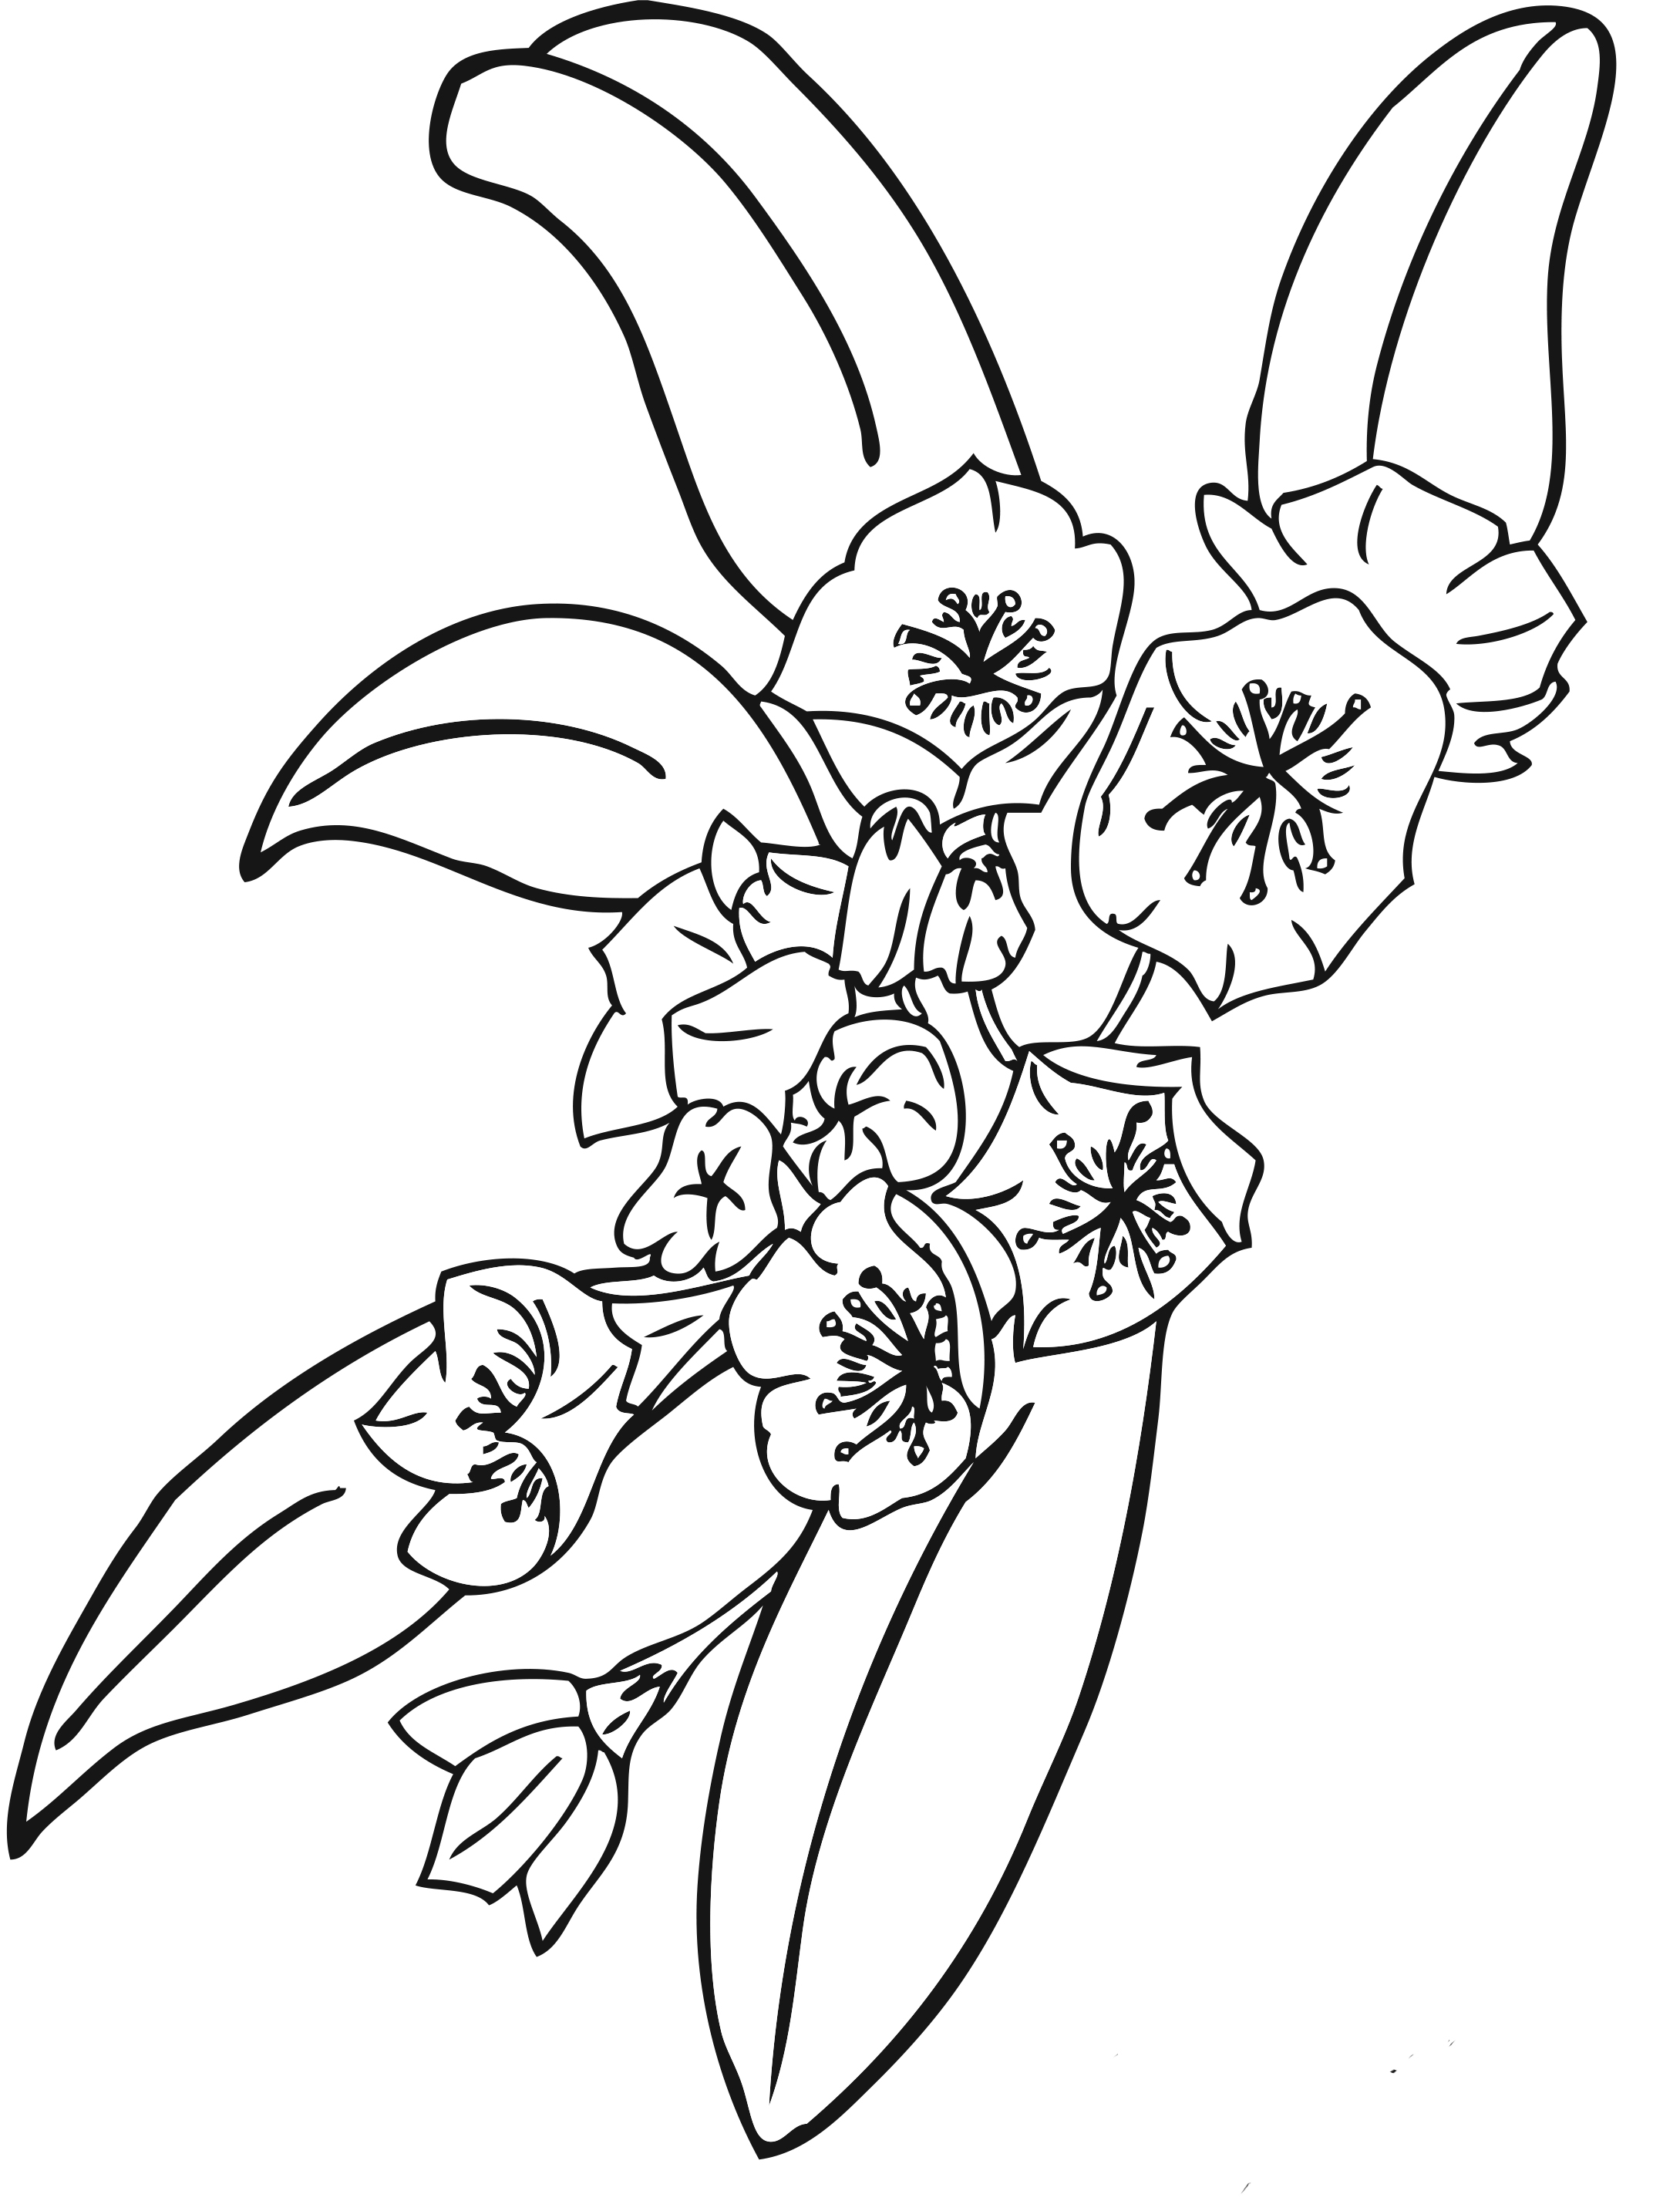 flower colouring pictures to print printable flower pictures to color beautiful flowers pictures colouring to flower print